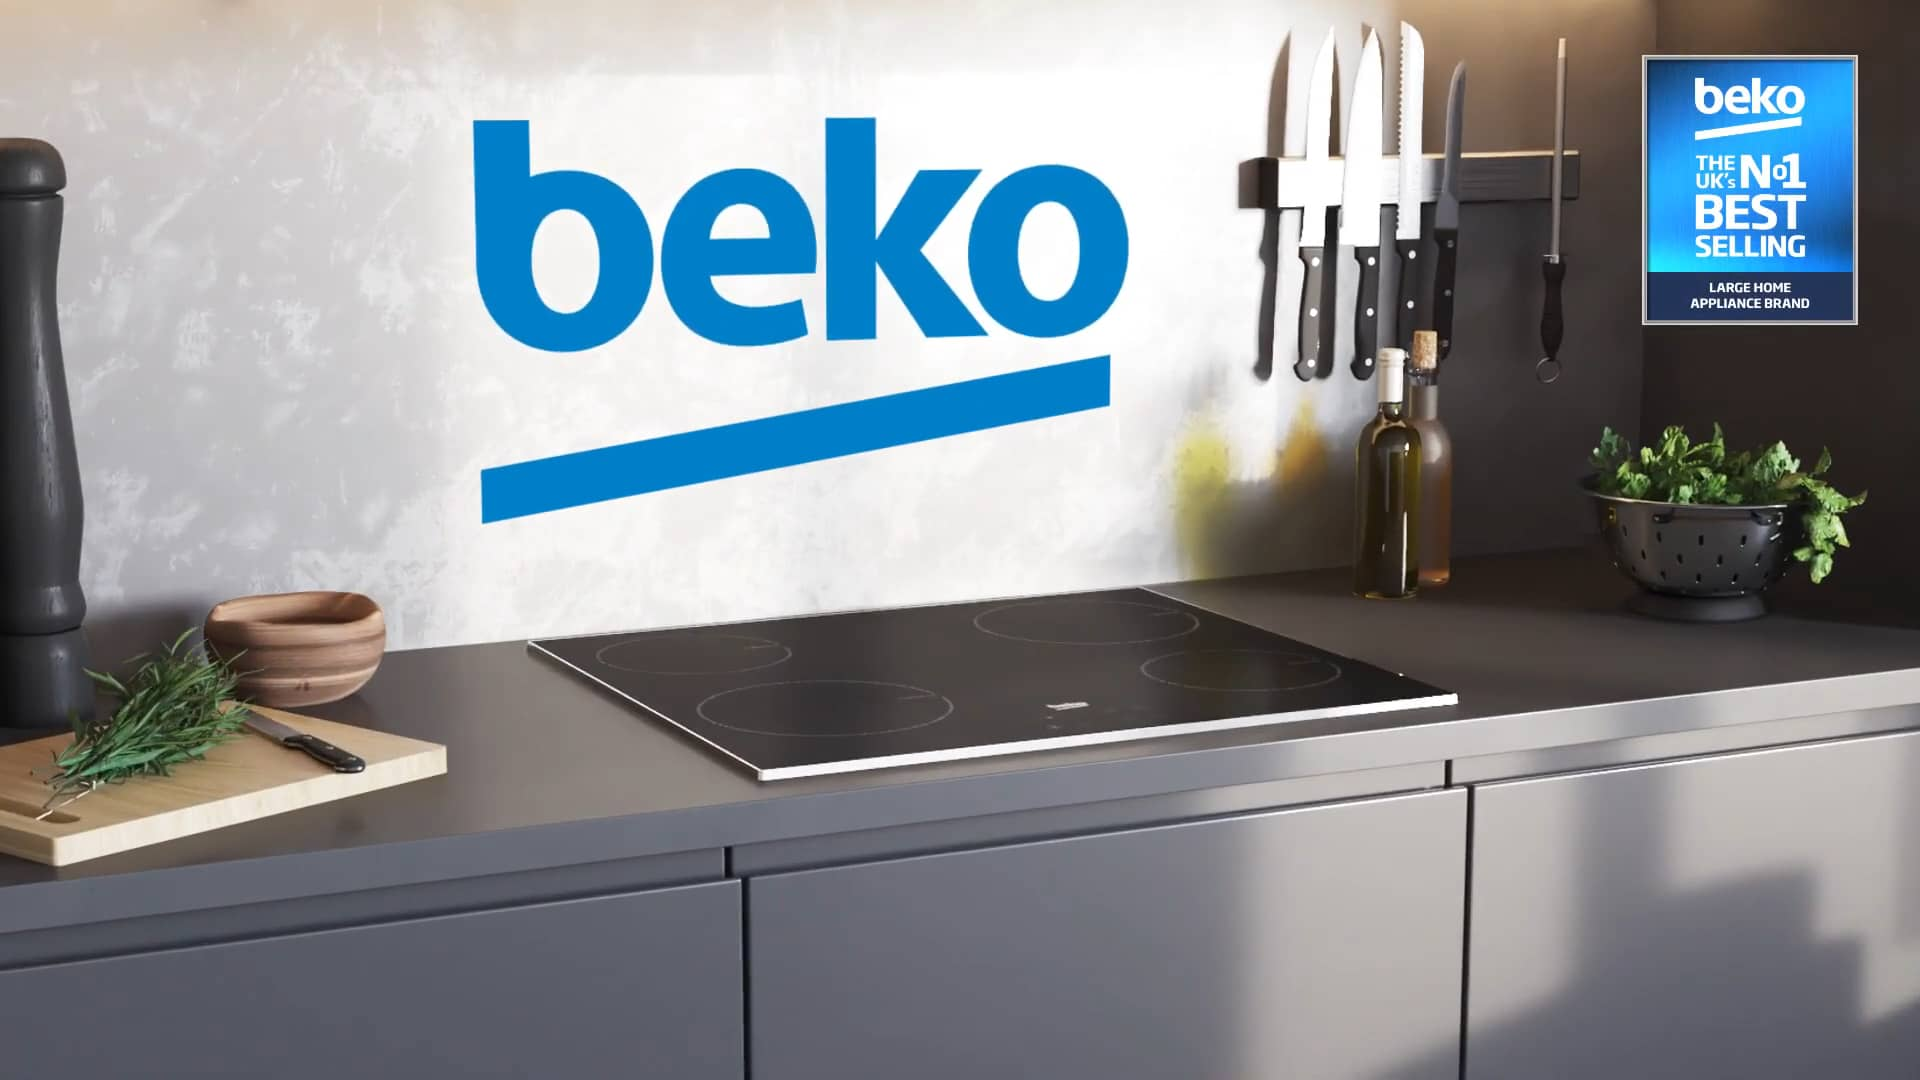 All,Beko Domestic Appliances,Brand Loyalty,Communication,Customer Experience,Digital Reinvention Practice,Manufacturing & Engineering Industry,Marketing,Performance Improvement Practice,Product Dev & Launch,Revenue Optimization,Safety & Security,Strategy & Innovation,Strategy & Innovation Practice,Technology